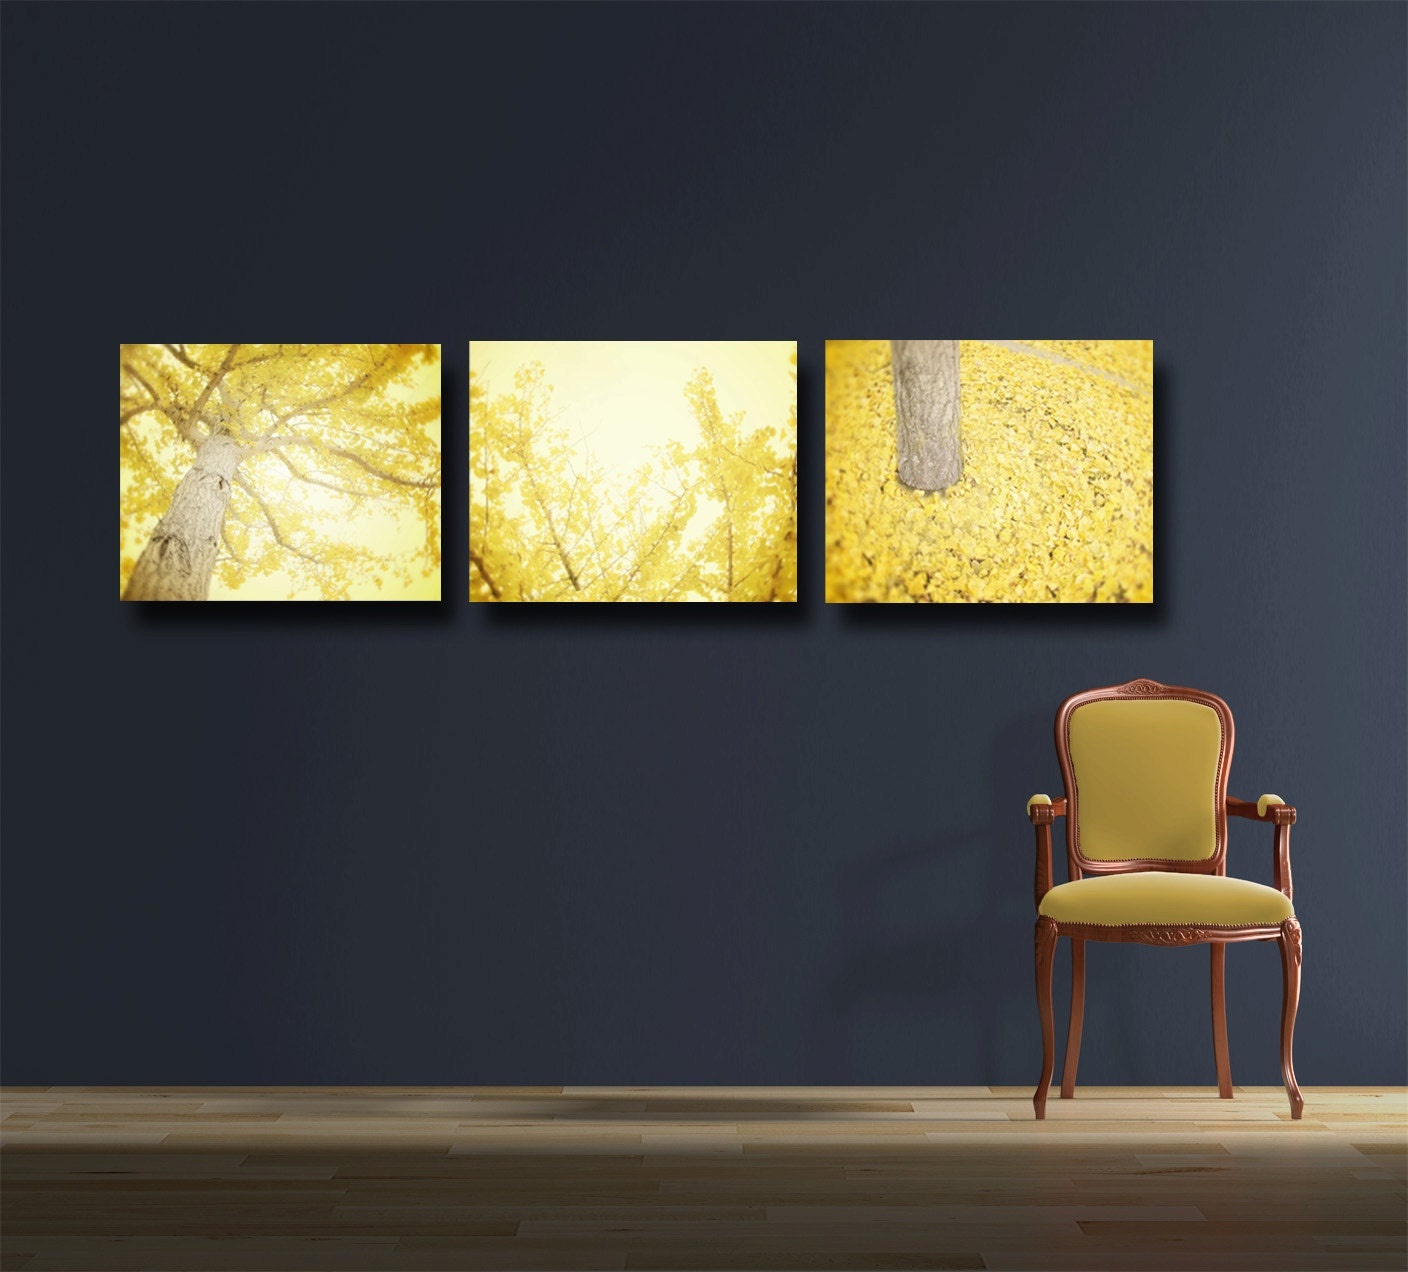 Wall Art Canvas Yellow : Yellow wall art canvas gallery wraps set of by